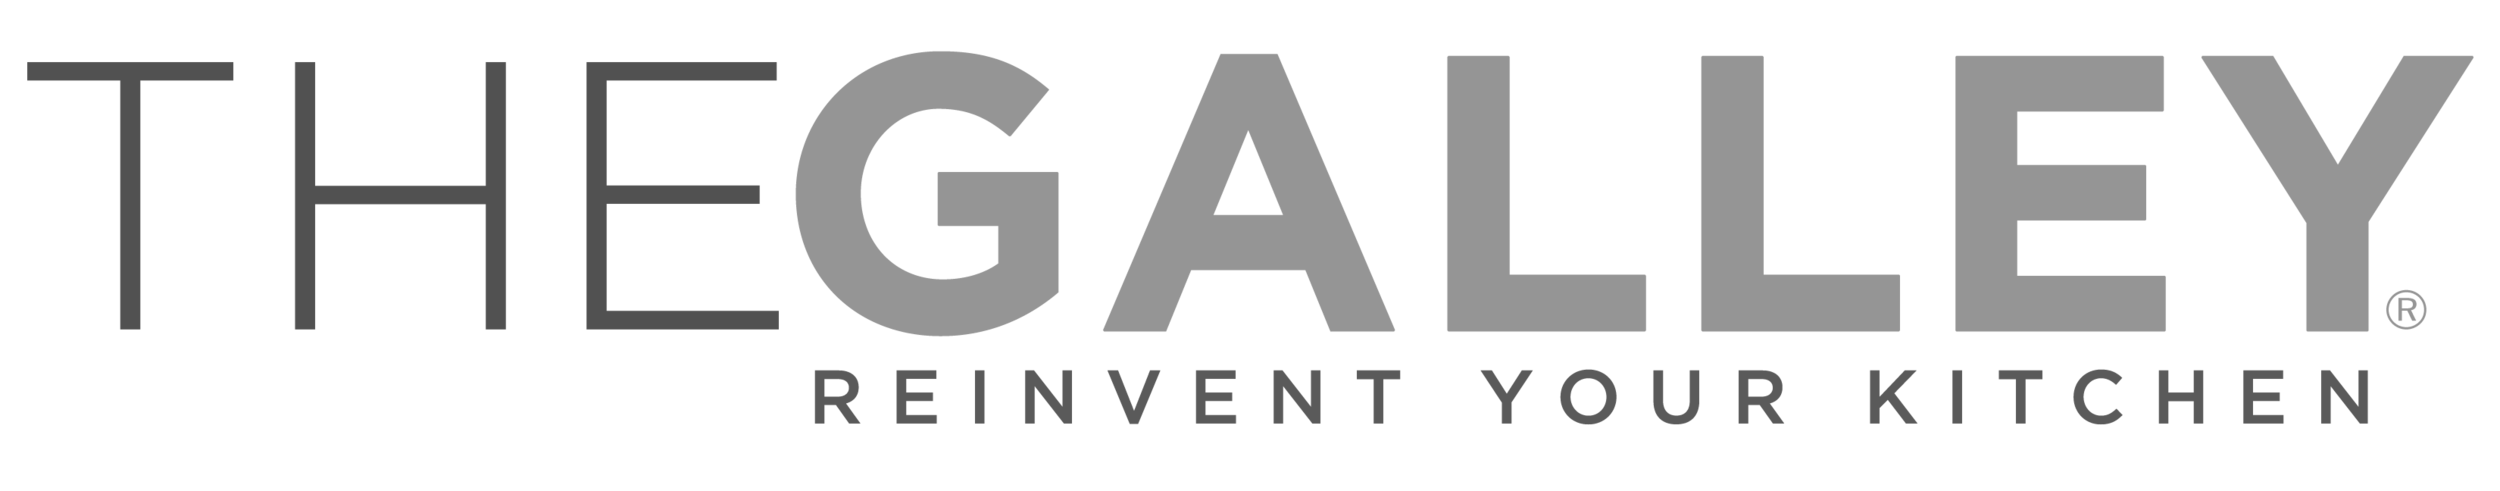 galley-logo.png